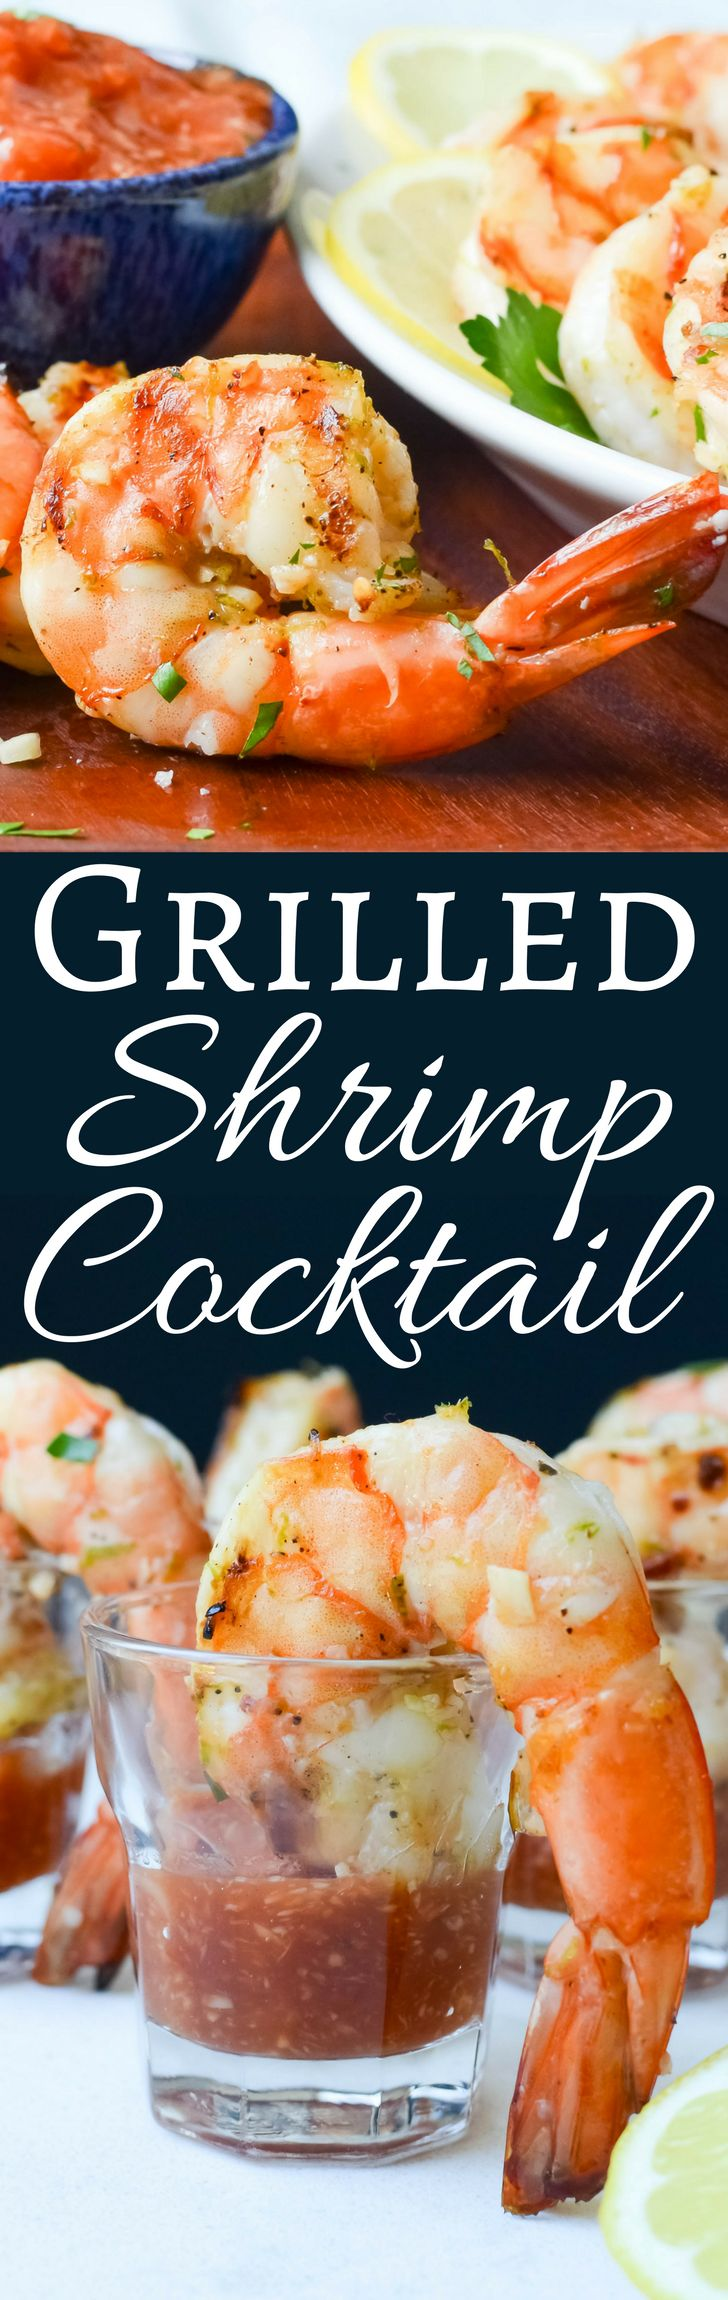 Need an easy shrimp recipe? This Grilled Shrimp Cocktail with homemade cocktail sauce has just a few ingredients and is ready in minutes. Great for entertaining!